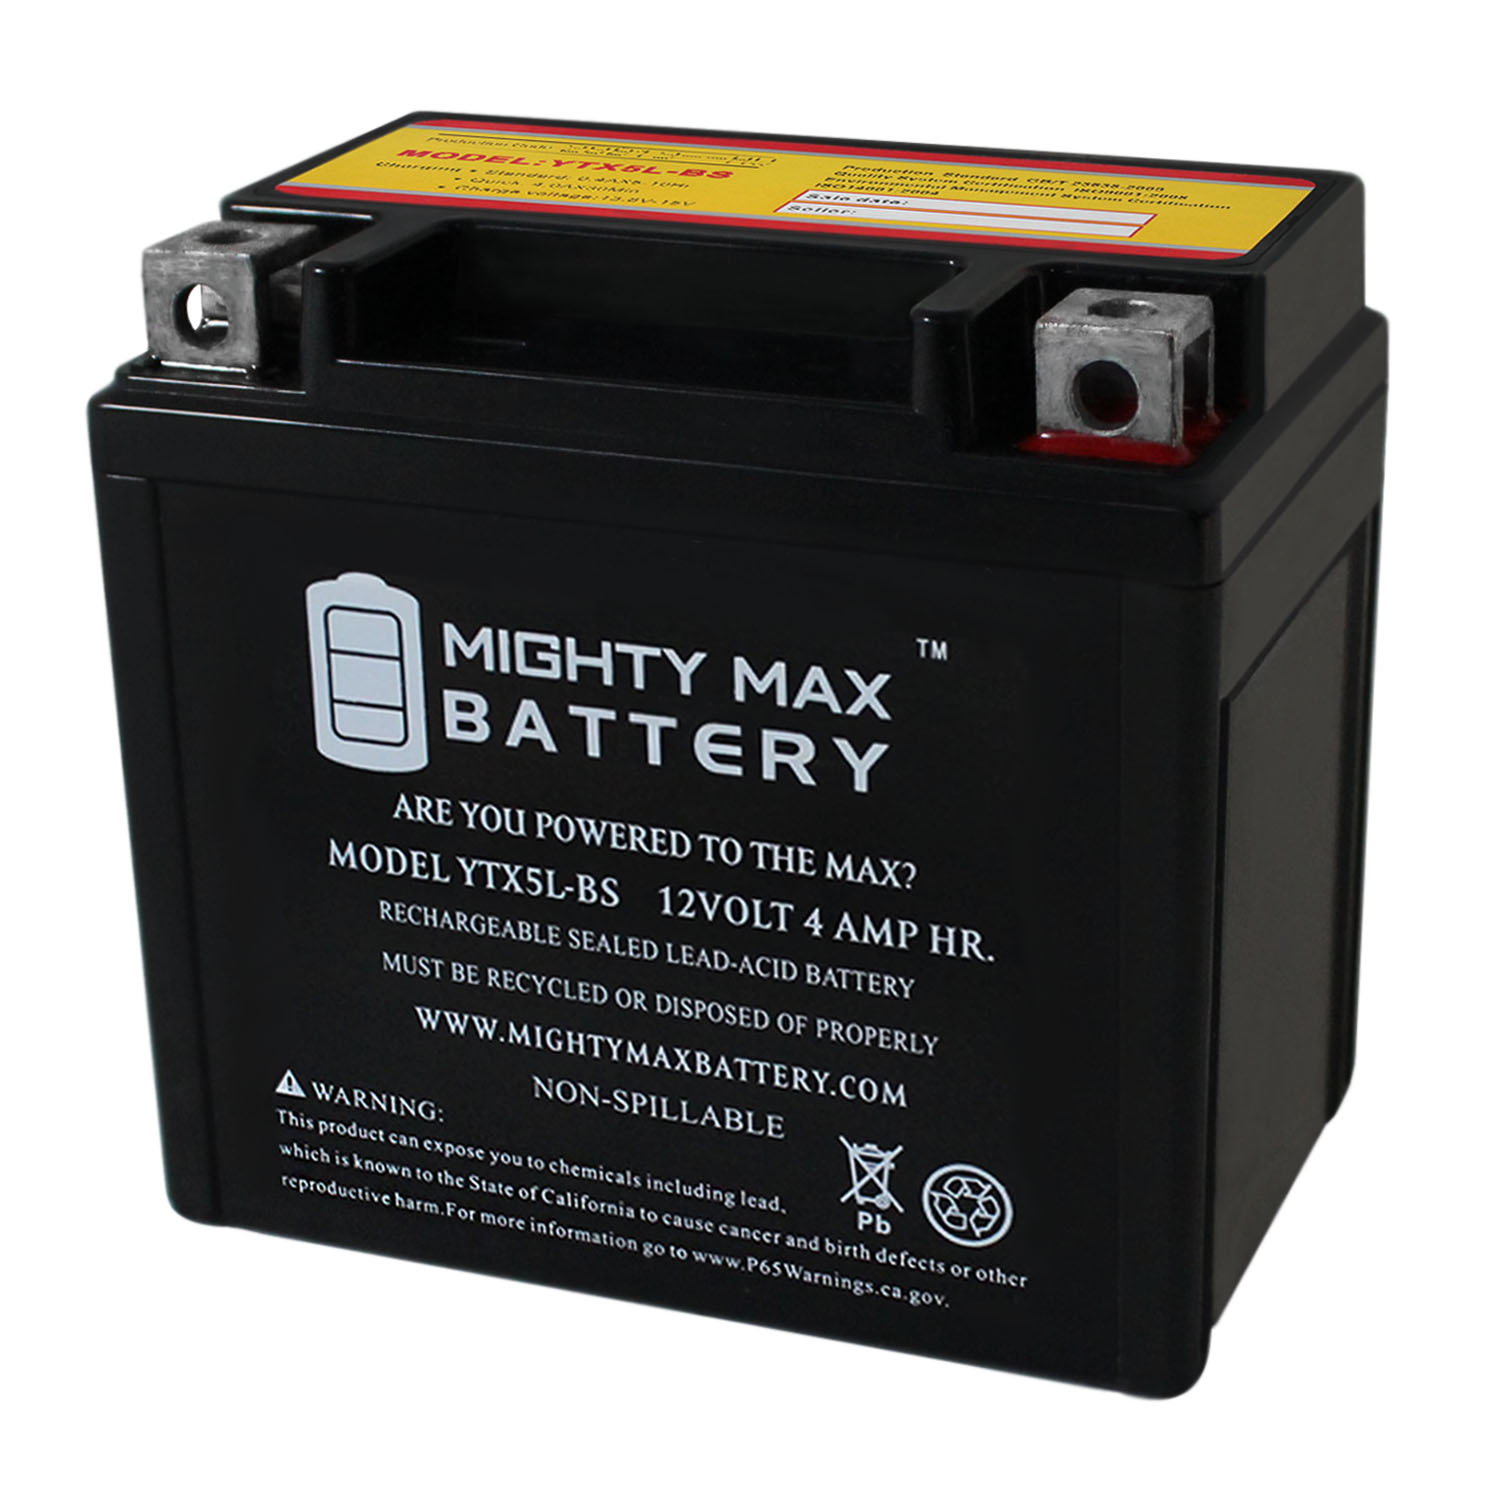 YTX5L-BS 12V 4AH Battery for Motocycle ATV Snowmobile Mower PWC